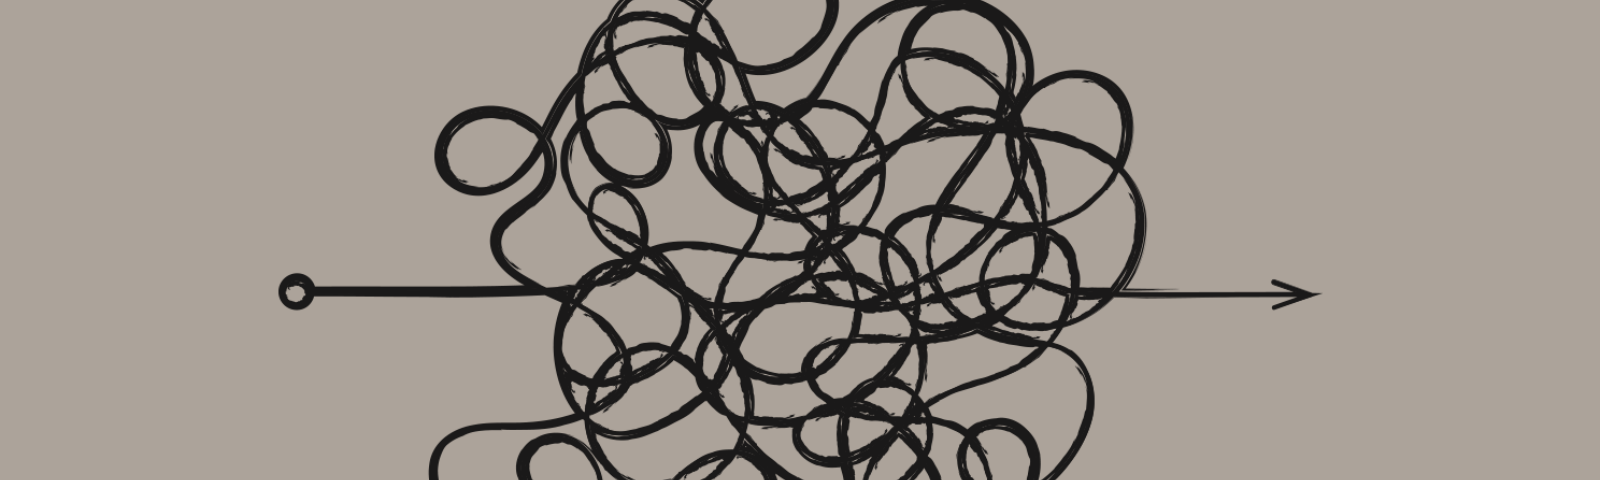 Single line drawing in black marker of an arrow with lots of squiggles in the middle and a point on the righthand side